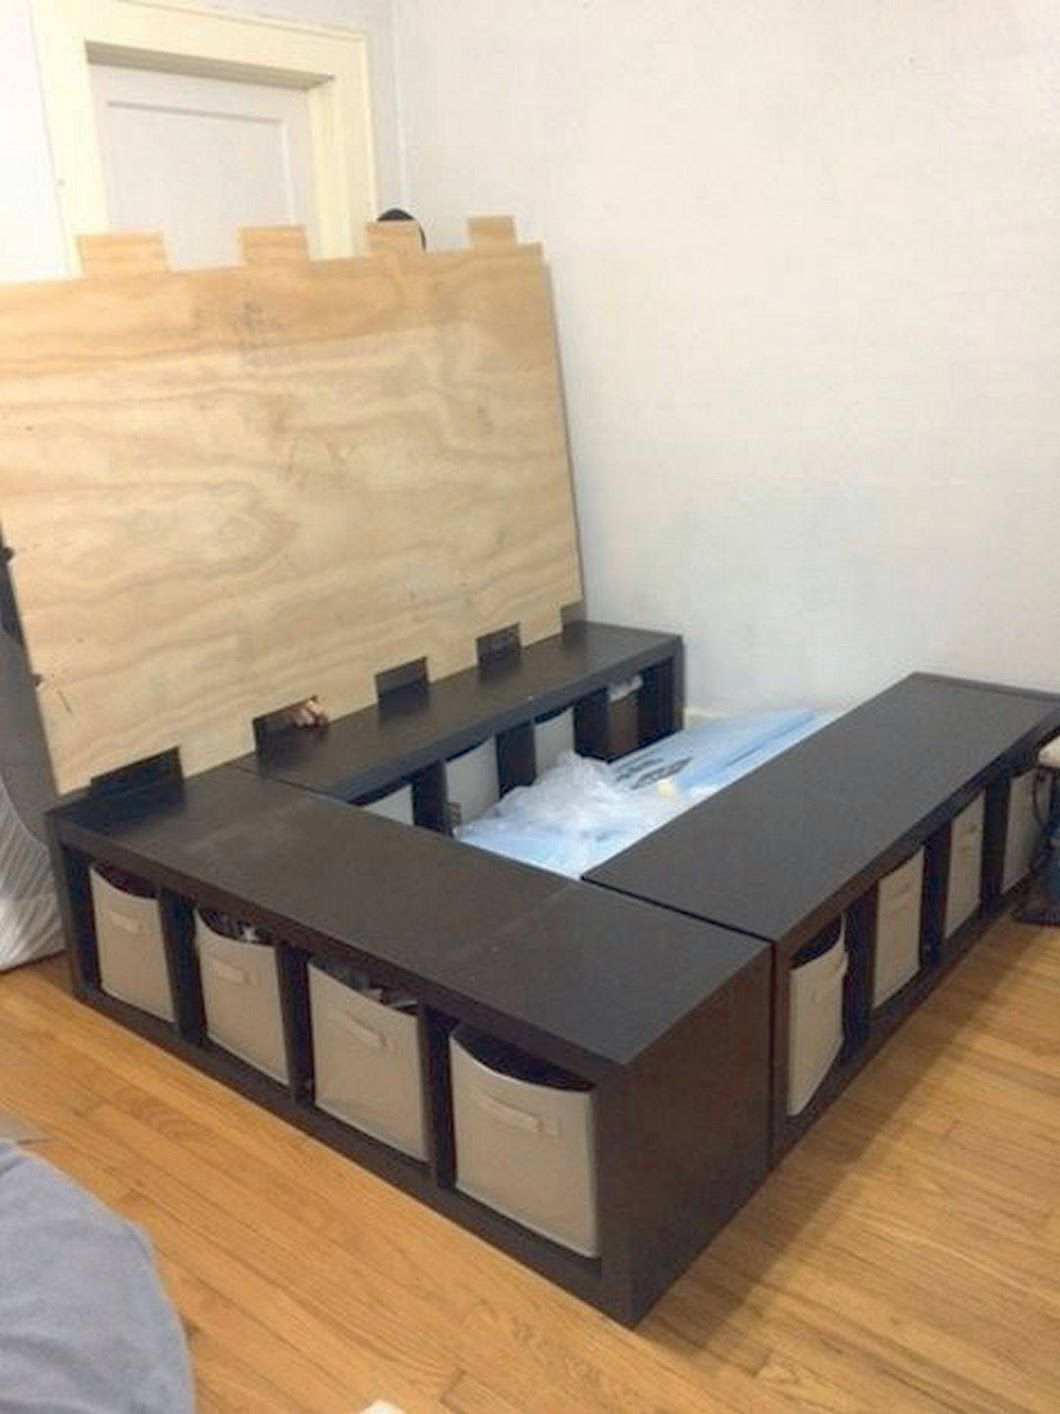 DIY Storage Bed place three 4cube storage shelves in a u